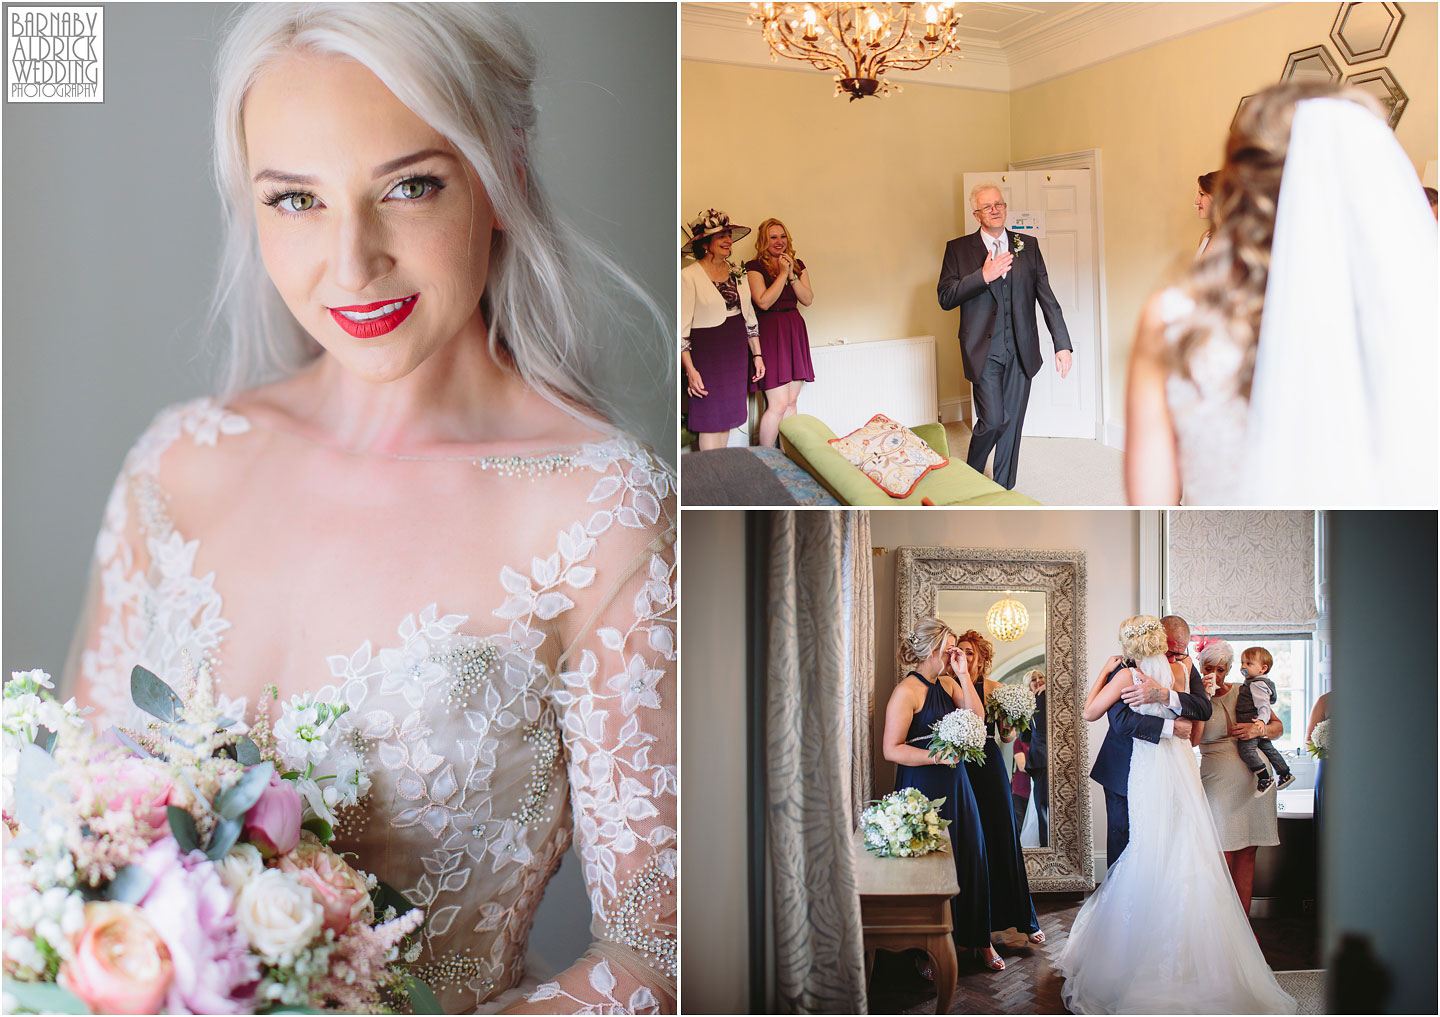 Bridal portraits at Saltmarshe Hall near Goole in East Yorkshire, Wedding photography at Saltmarshe Hall, East Yorkshire Wedding Photographer